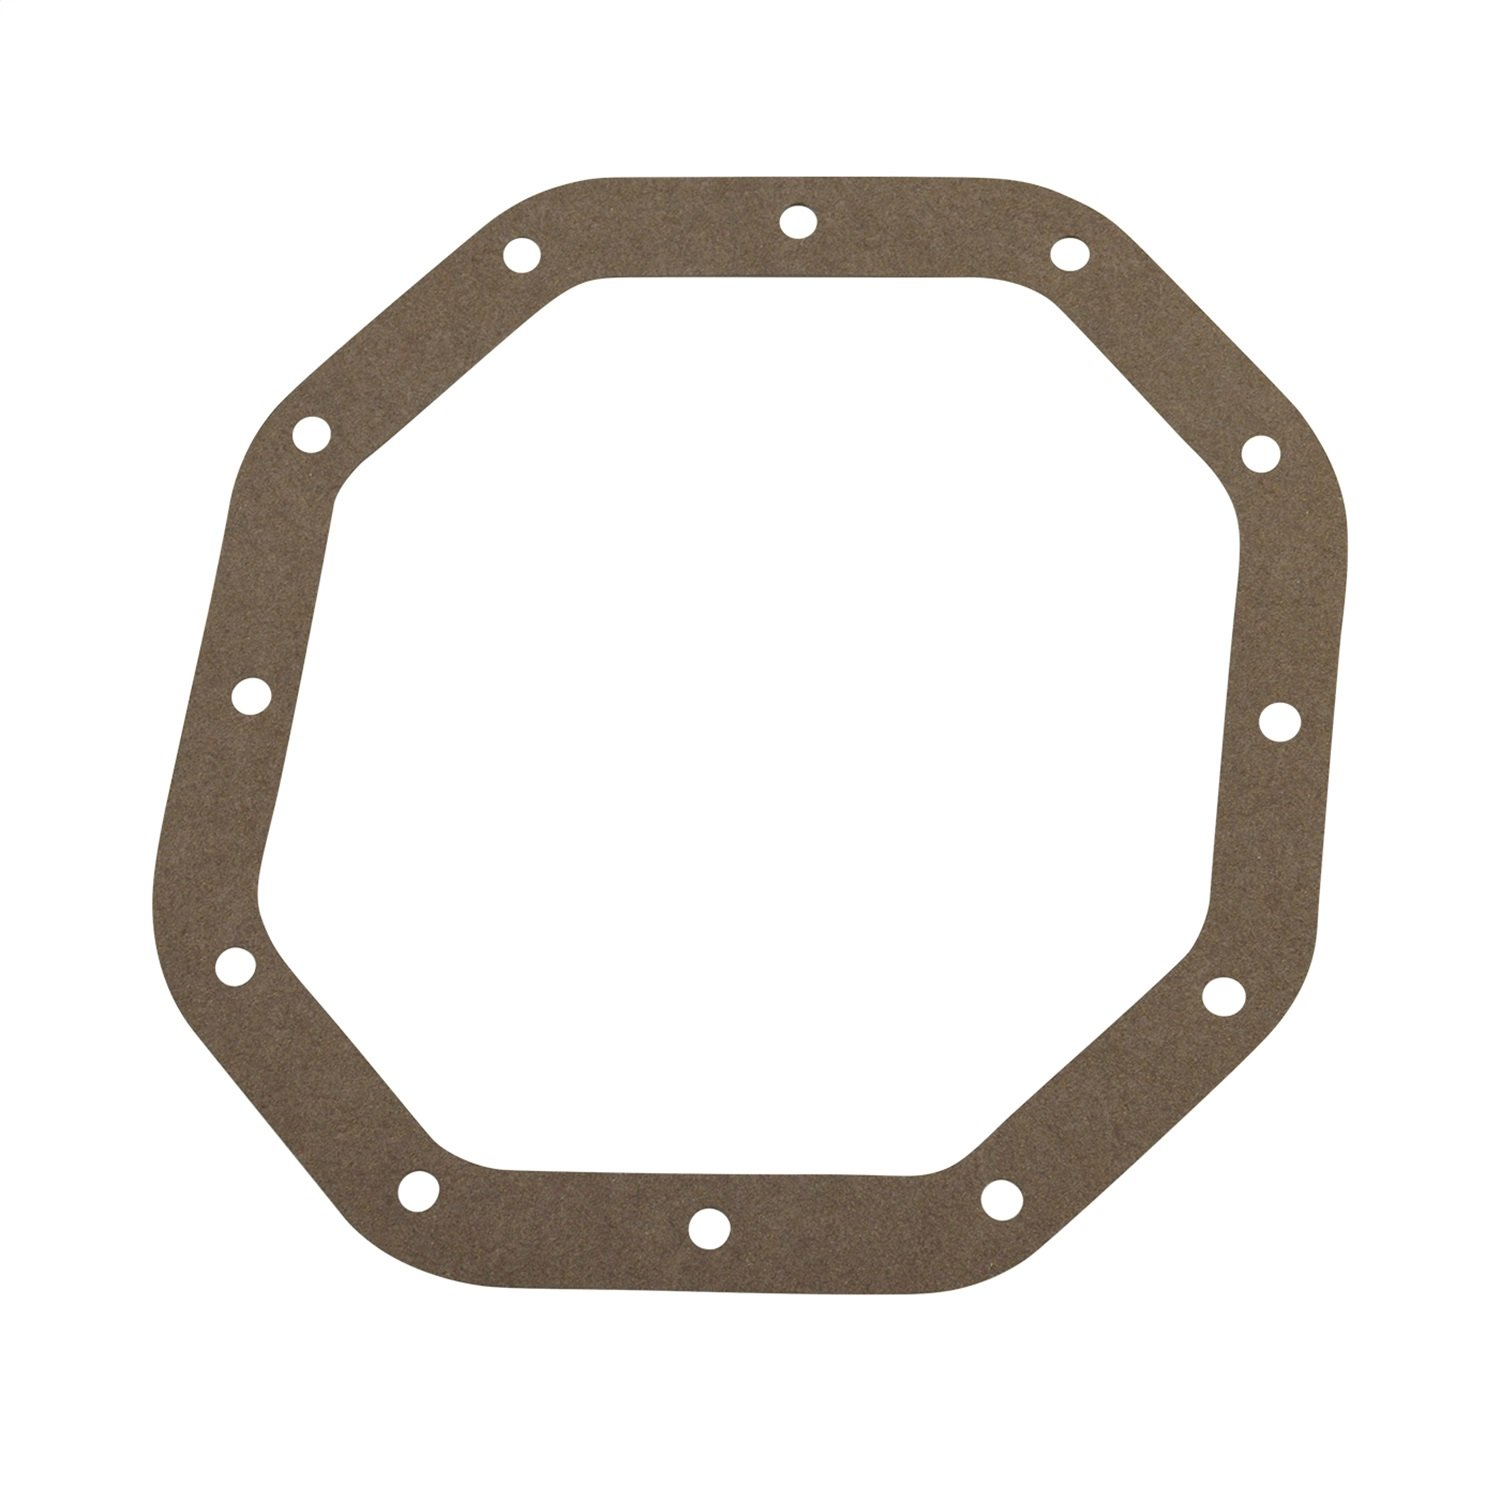 Yukon (YCGC9.25) Cover Gasket for Chrysler 9.25' Rear Differential Yukon Gear